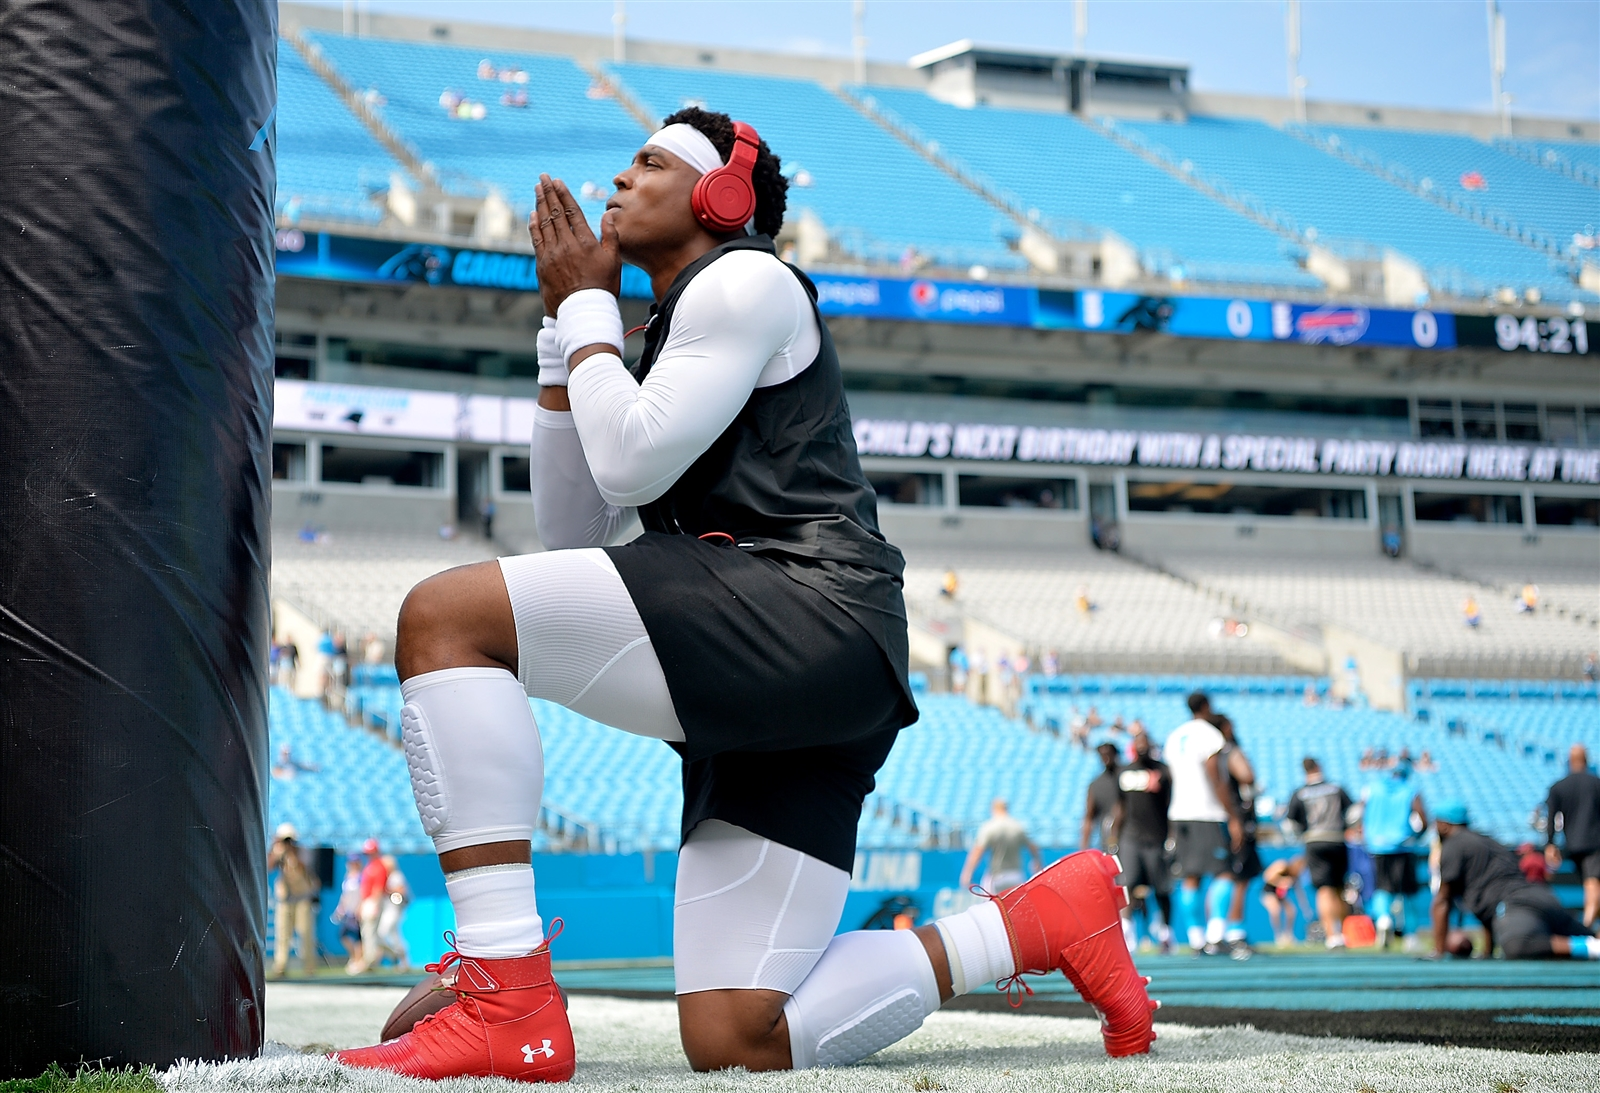 Cam Newton of the Carolina Panthers warms up before the game against the Buffalo Bills on Sunday, Sept. 17, 2017, at Bank of America Stadium in Charlotte, N.C.